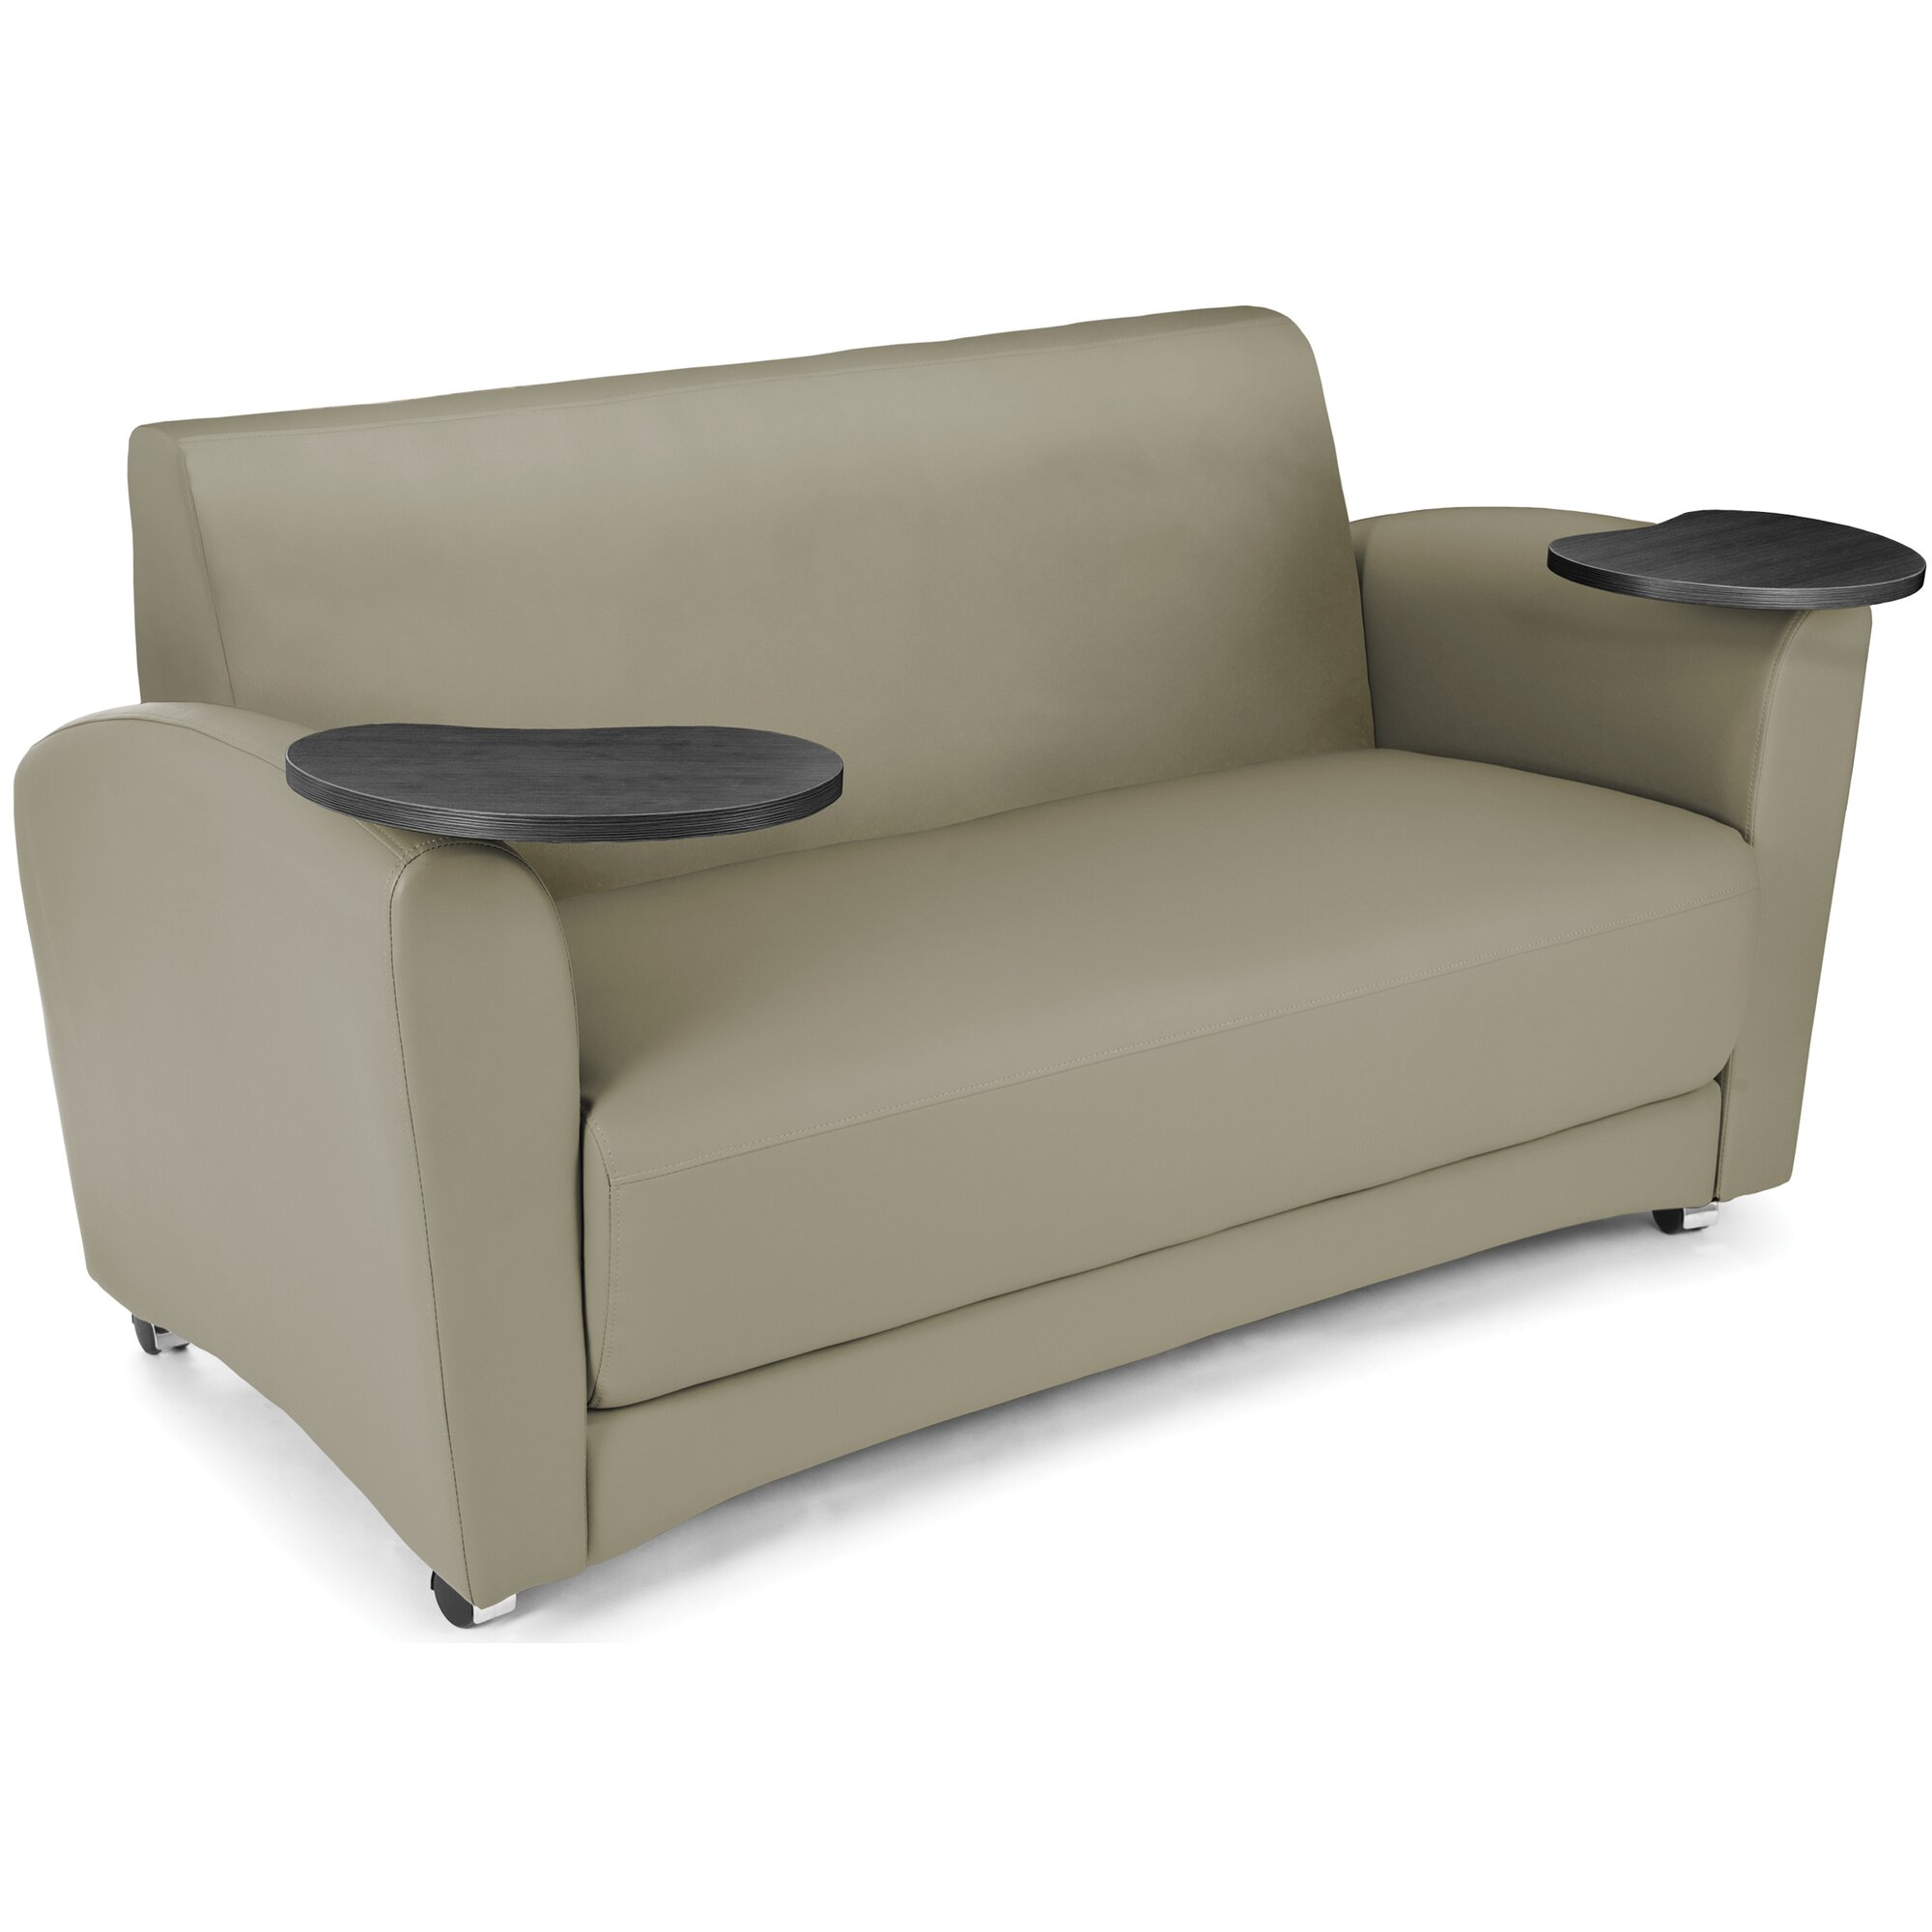 ofm interplay sofa with tablet reviews wayfair. Black Bedroom Furniture Sets. Home Design Ideas